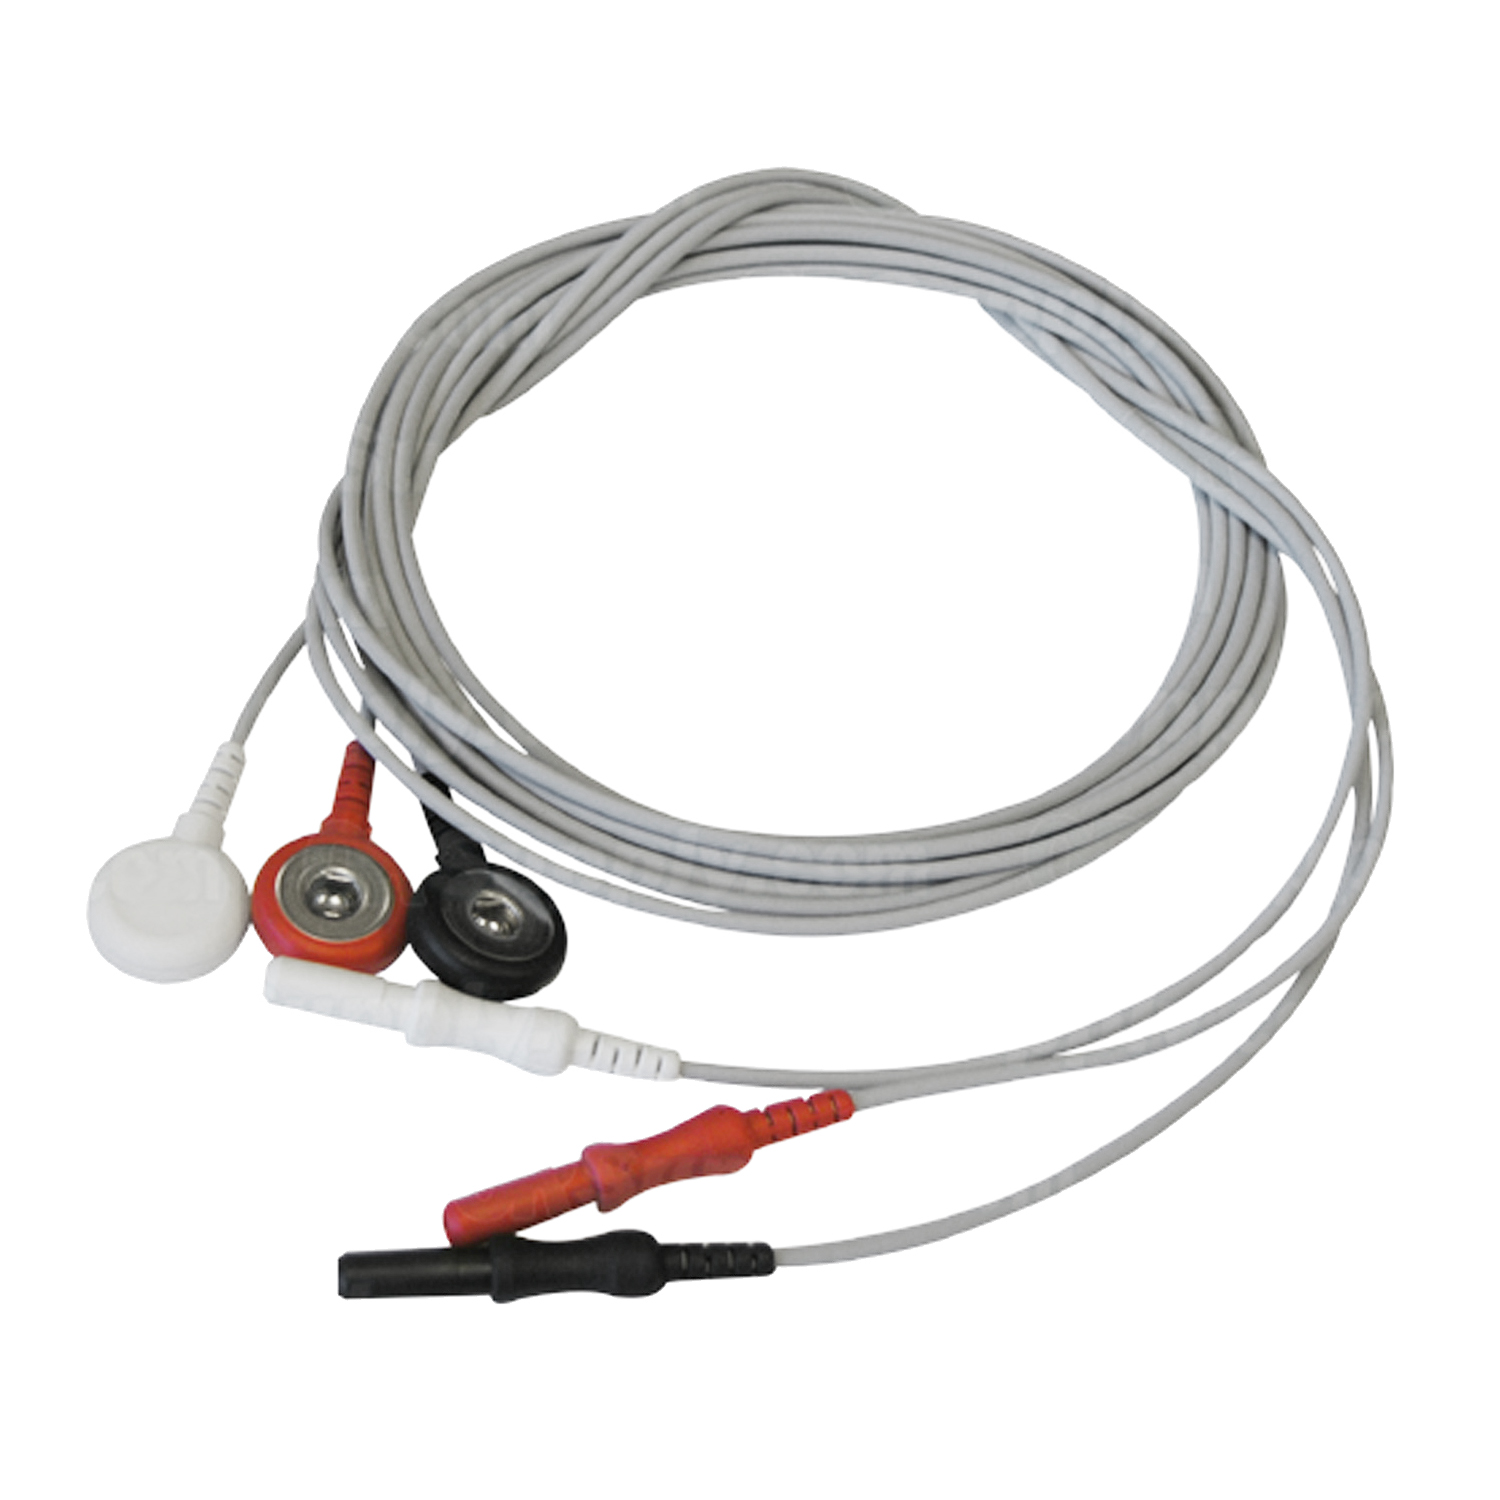 3-Lead ECG Snap Set Leadwires